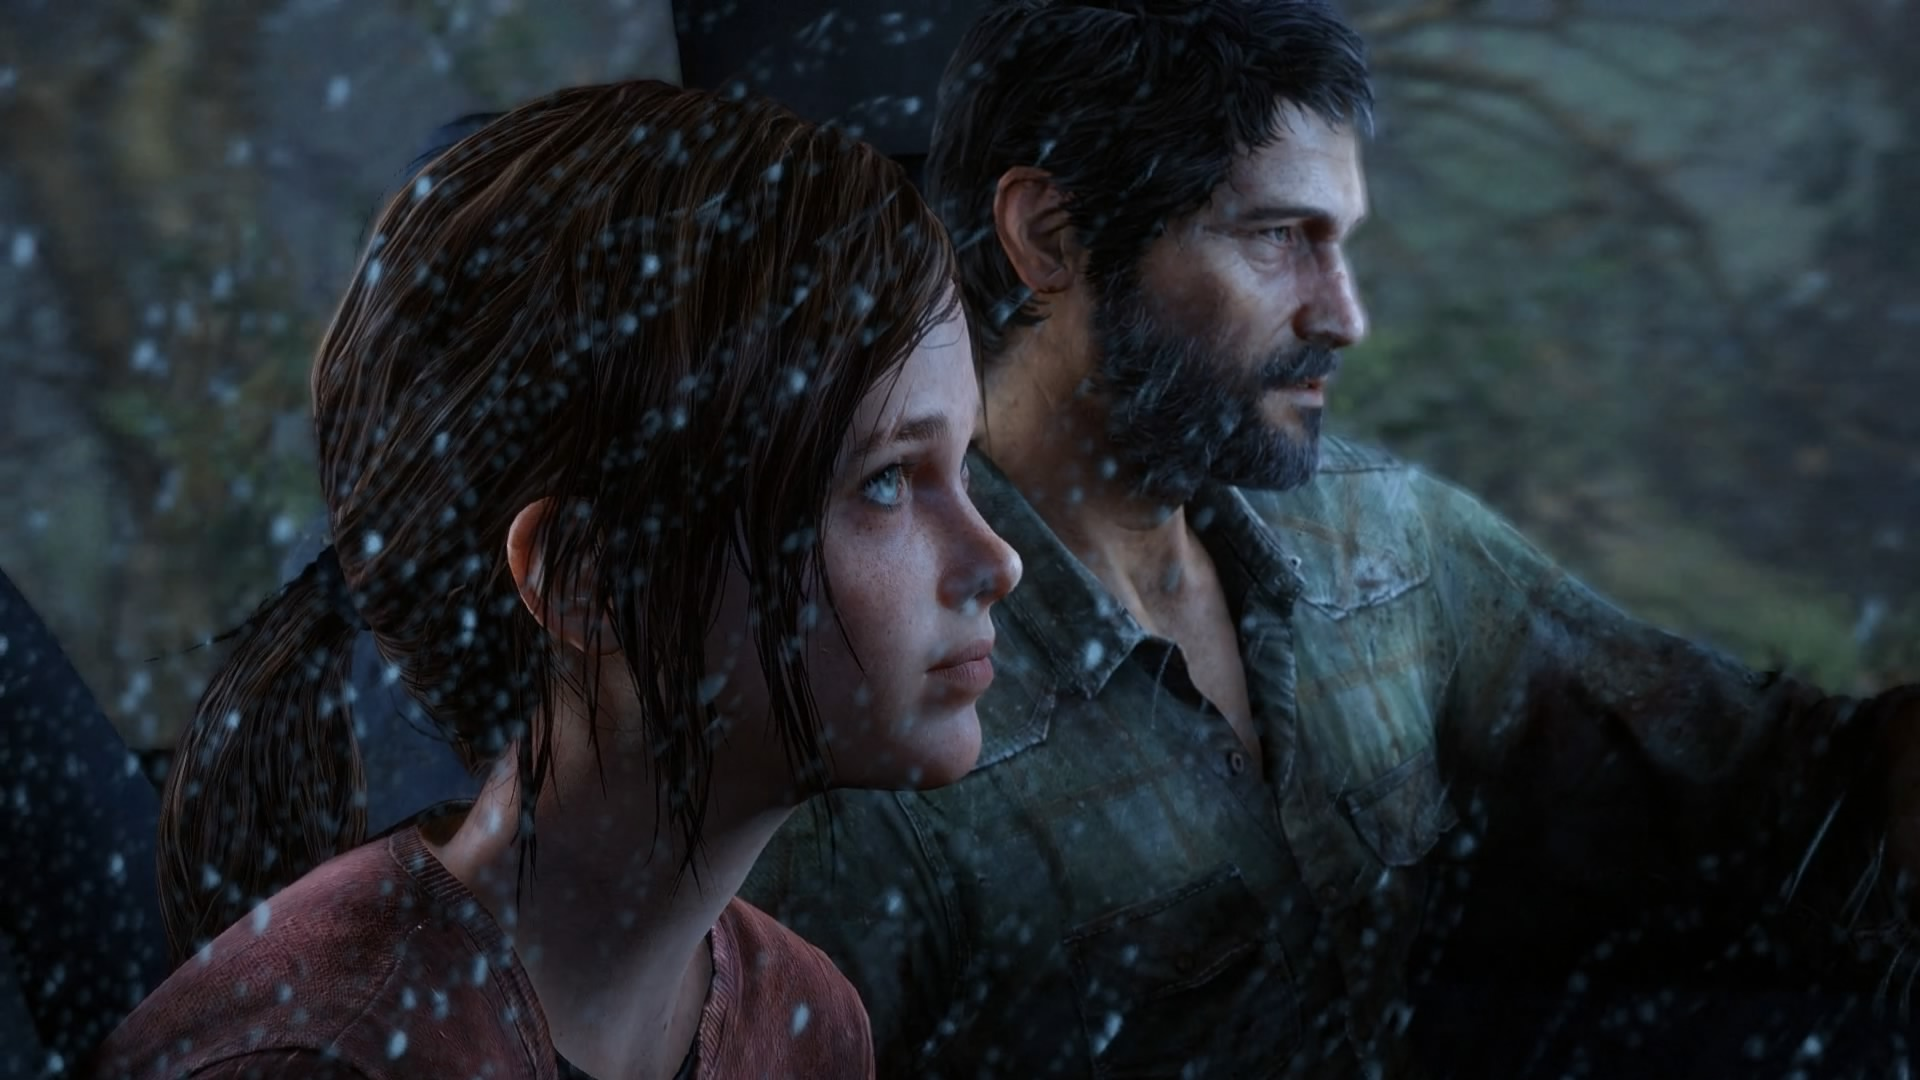 the last of us 2017 hd games 4k wallpapers images